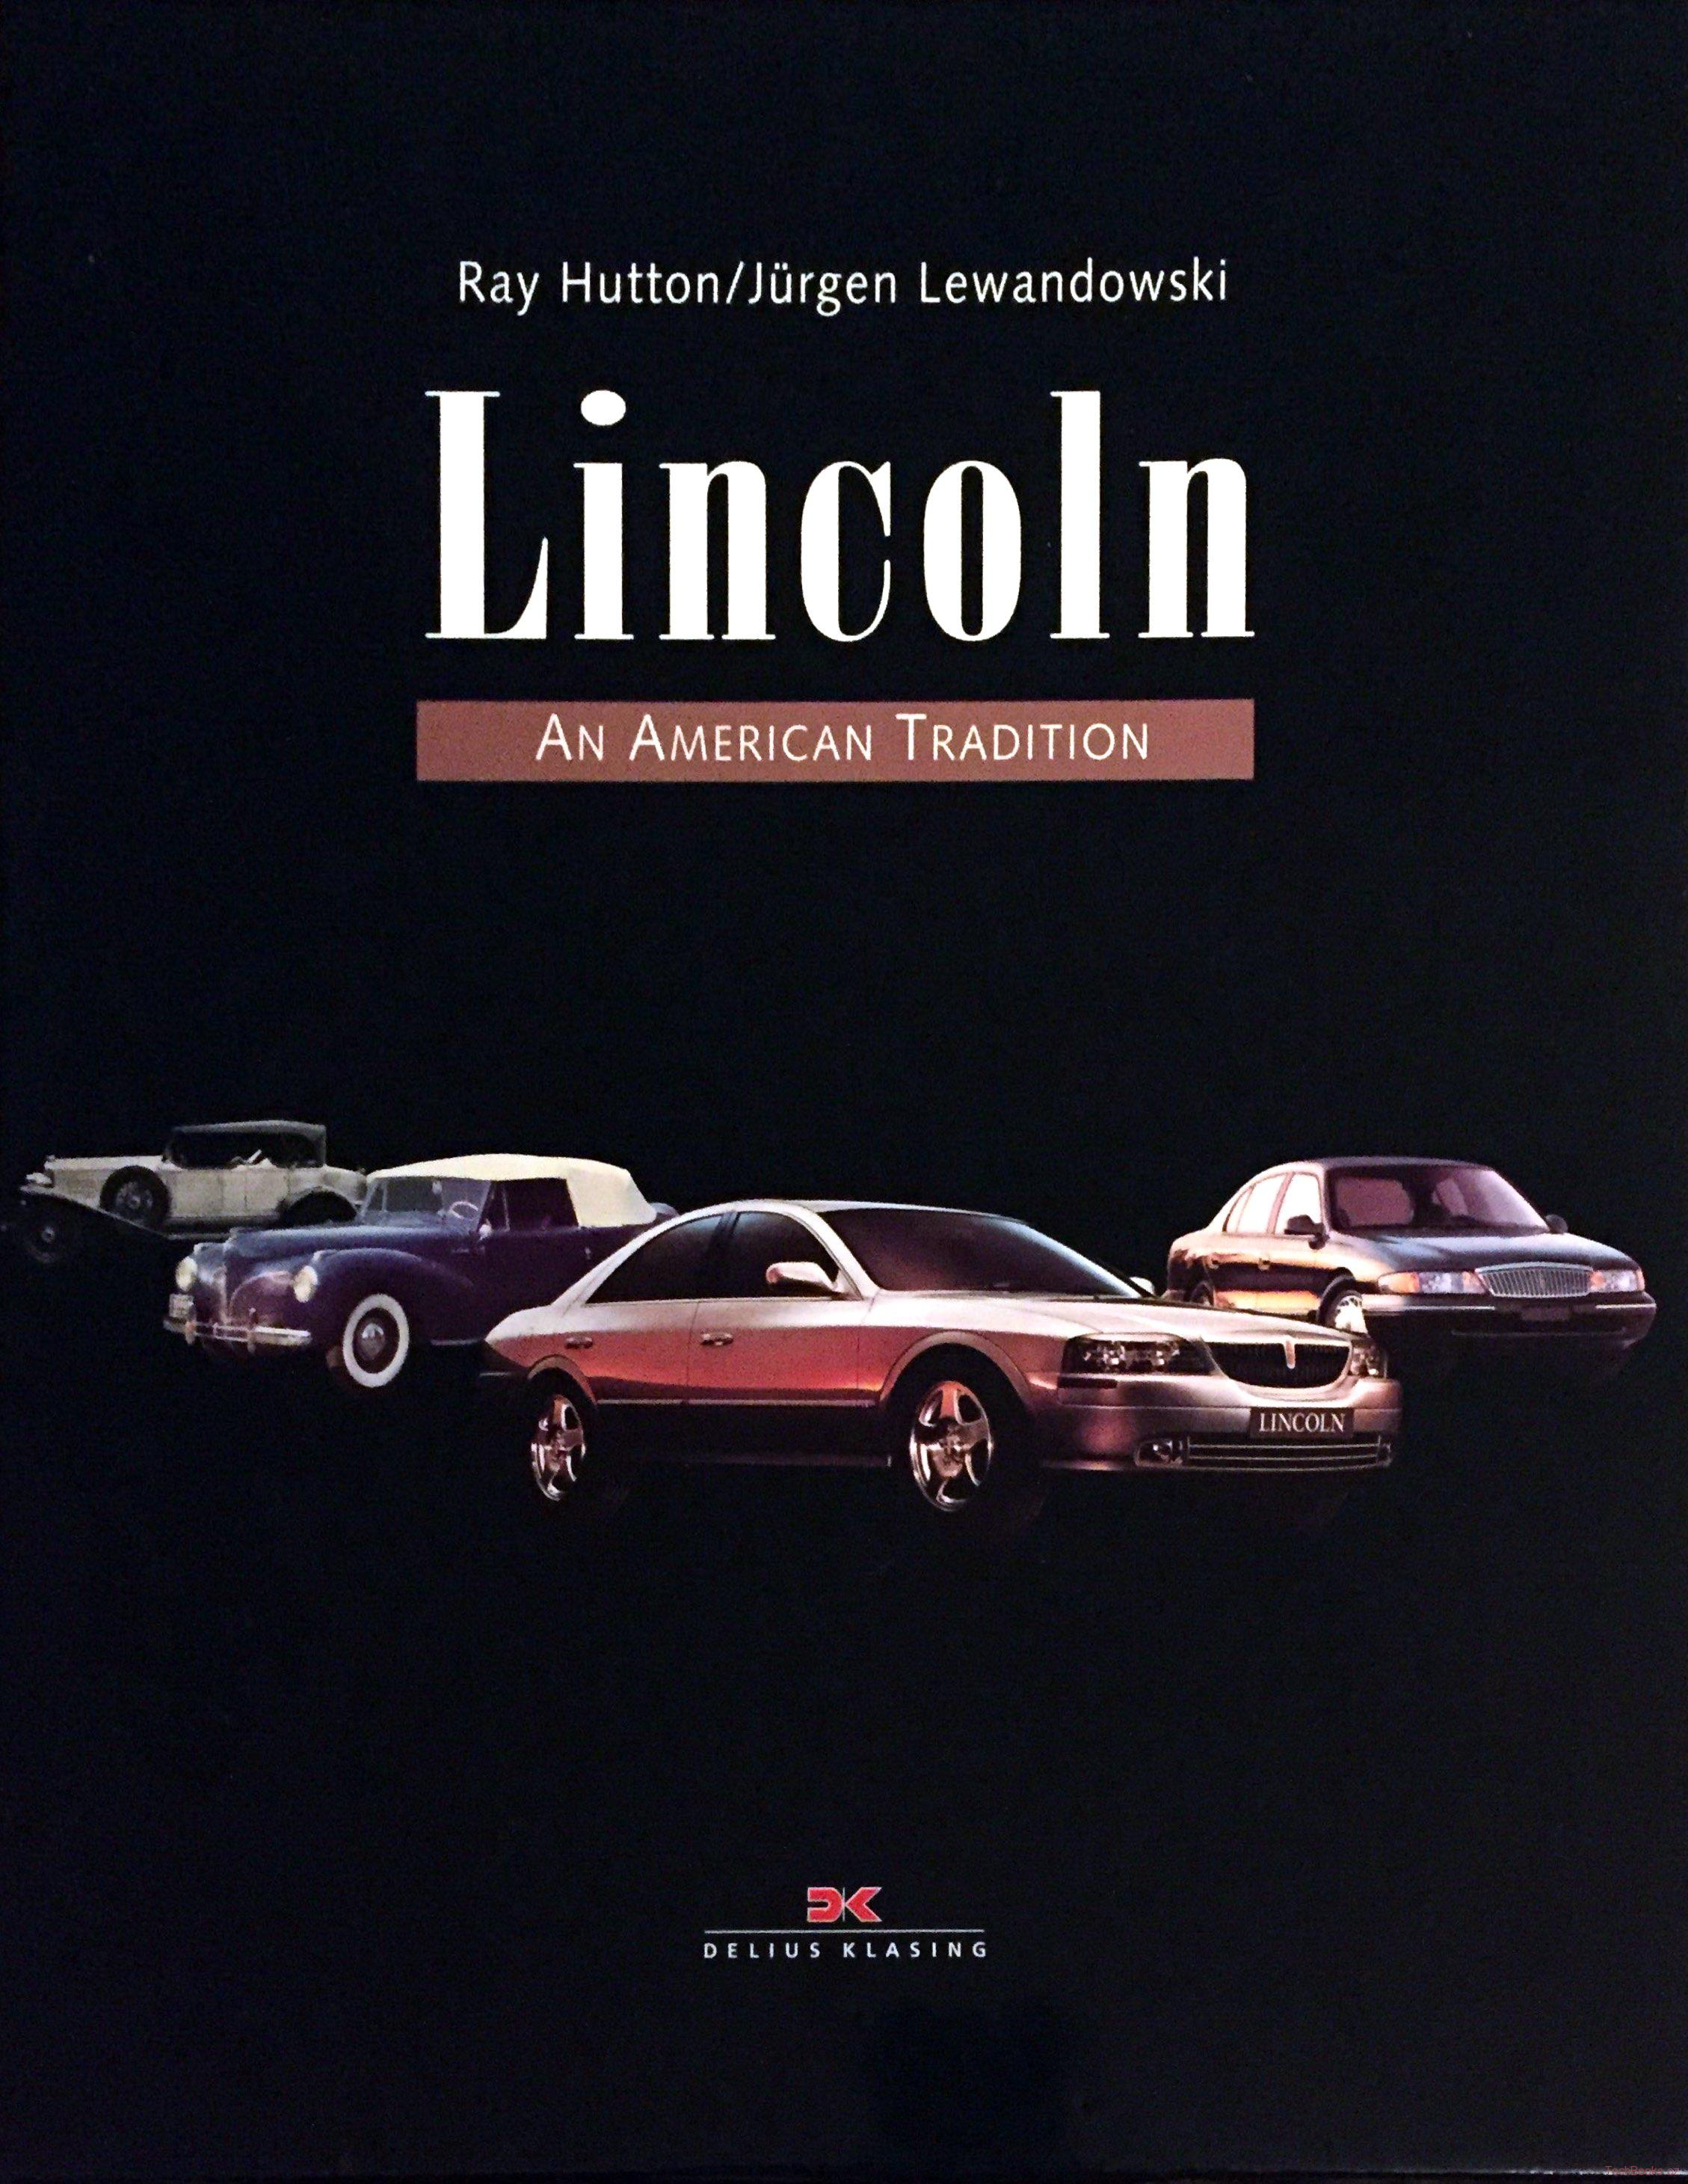 Lincoln - An American Tradition